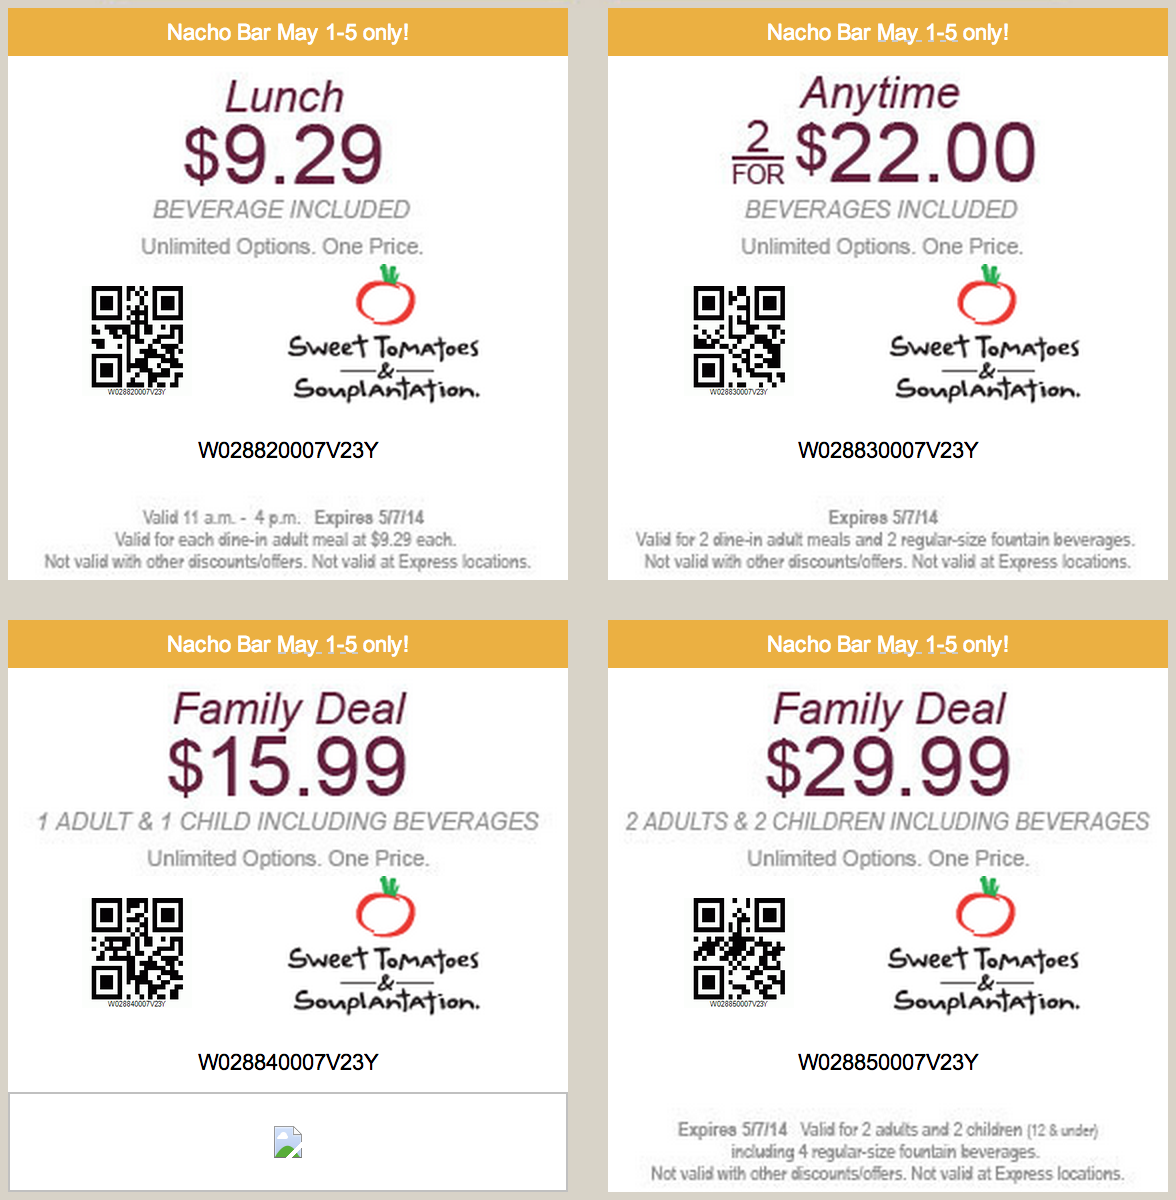 Get Coupons In Your Inbox. Join Club Veg to get exclusive deals from Sweet Tomatoes and Souplantation! You'll even get a special coupon on your birthday.